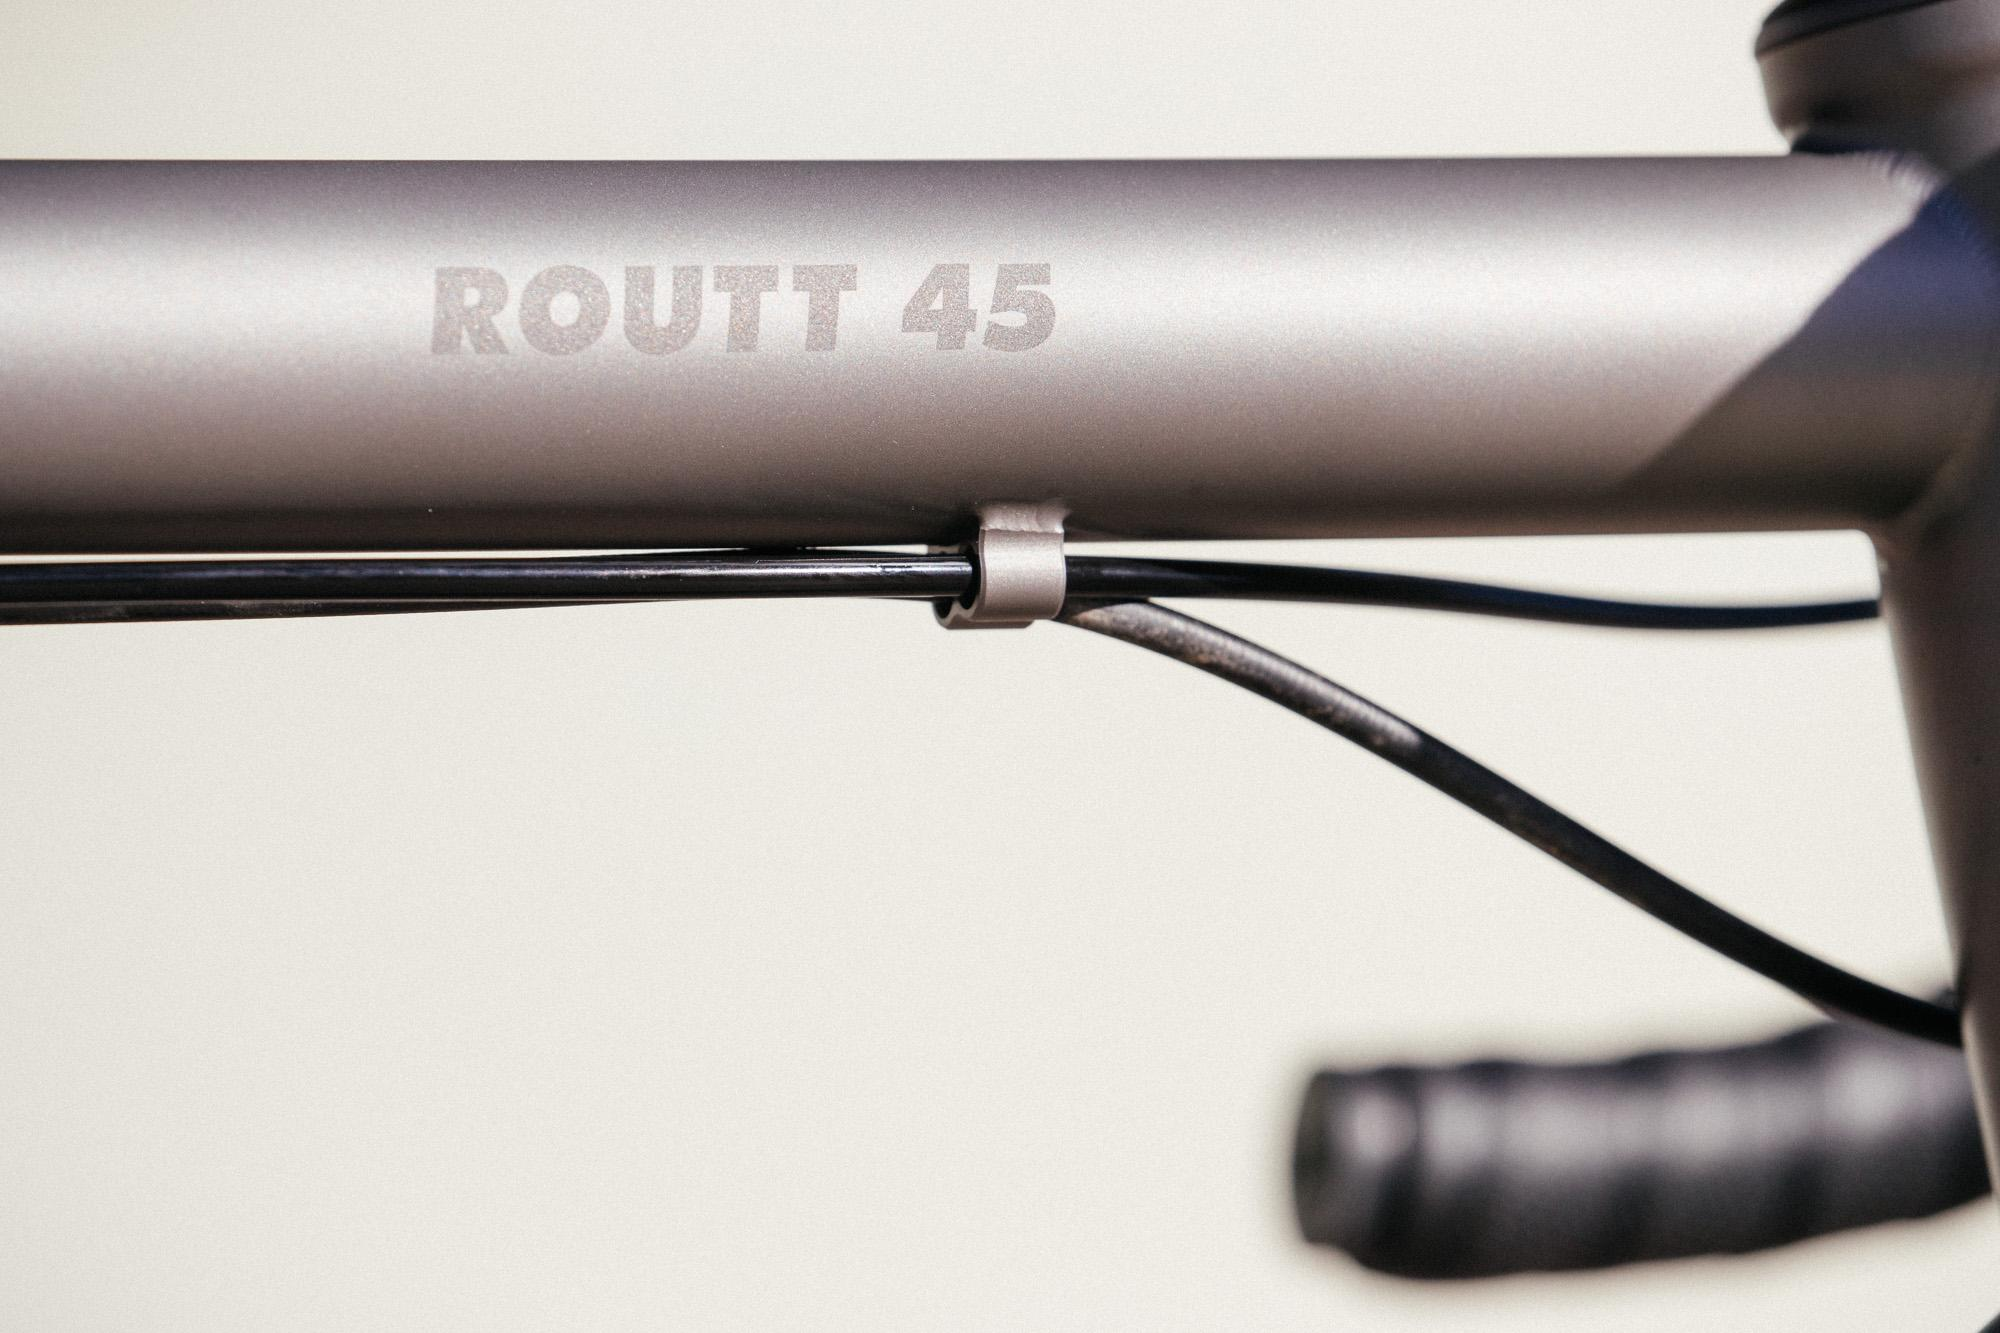 Tom's Moots Routt 45 is Ready To Rip